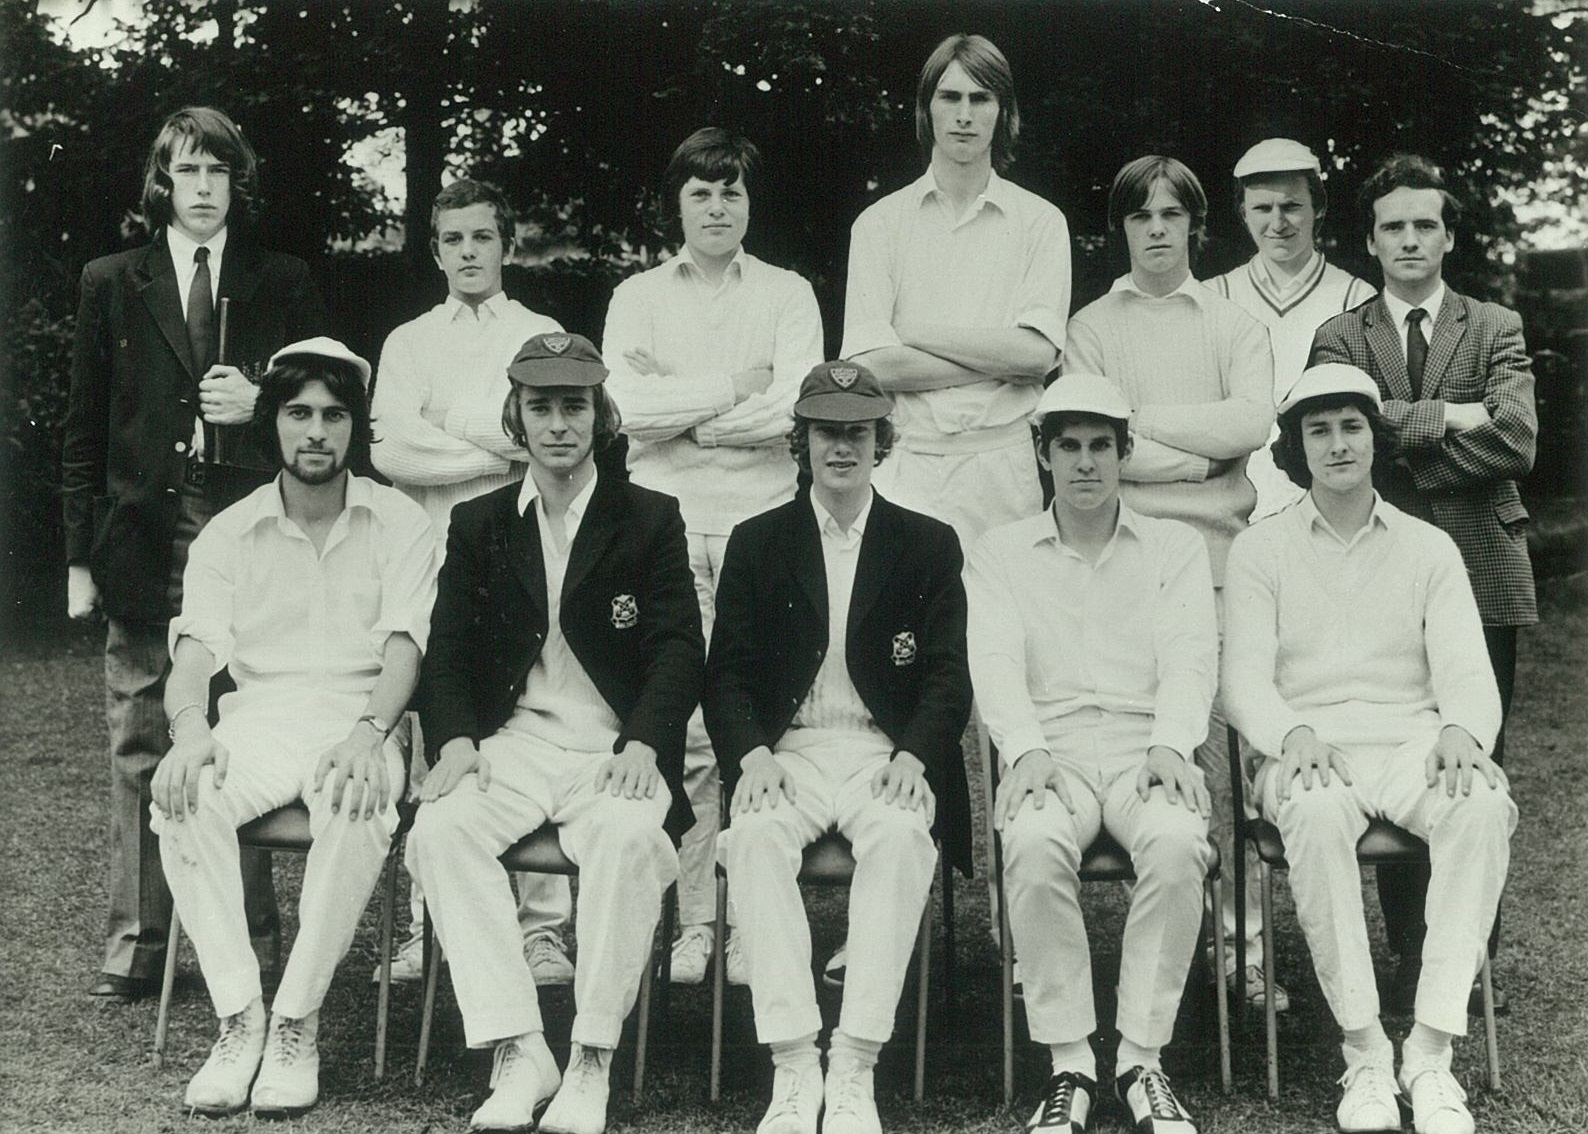 Black and white image of young men's cricket group posing for a photo